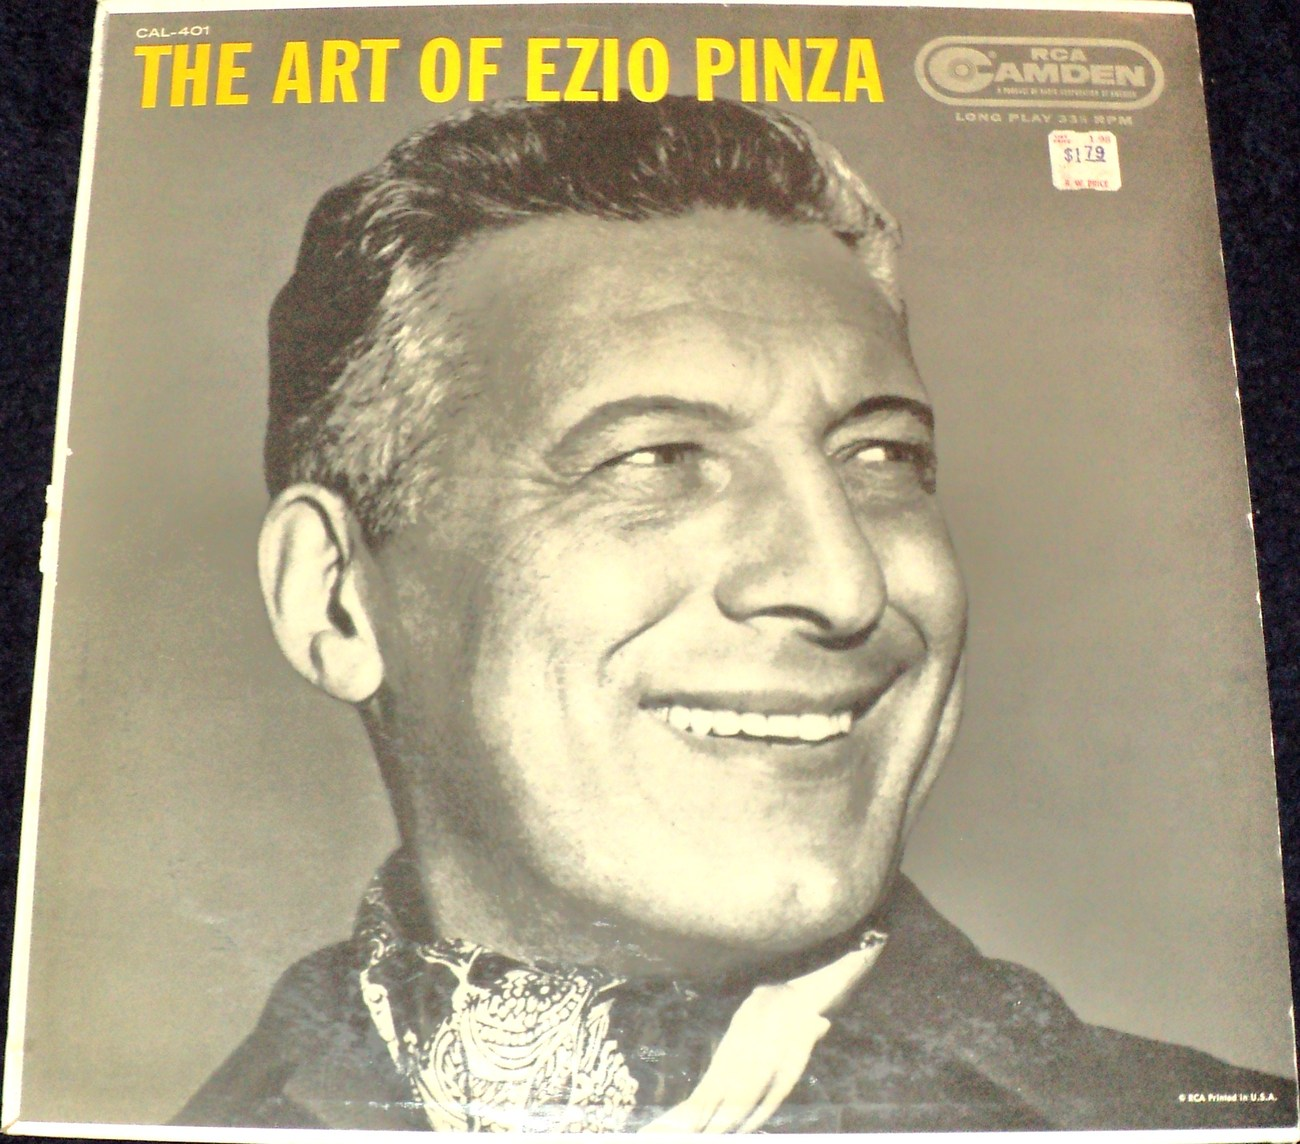 THE ART OF EZIO PINZA lp